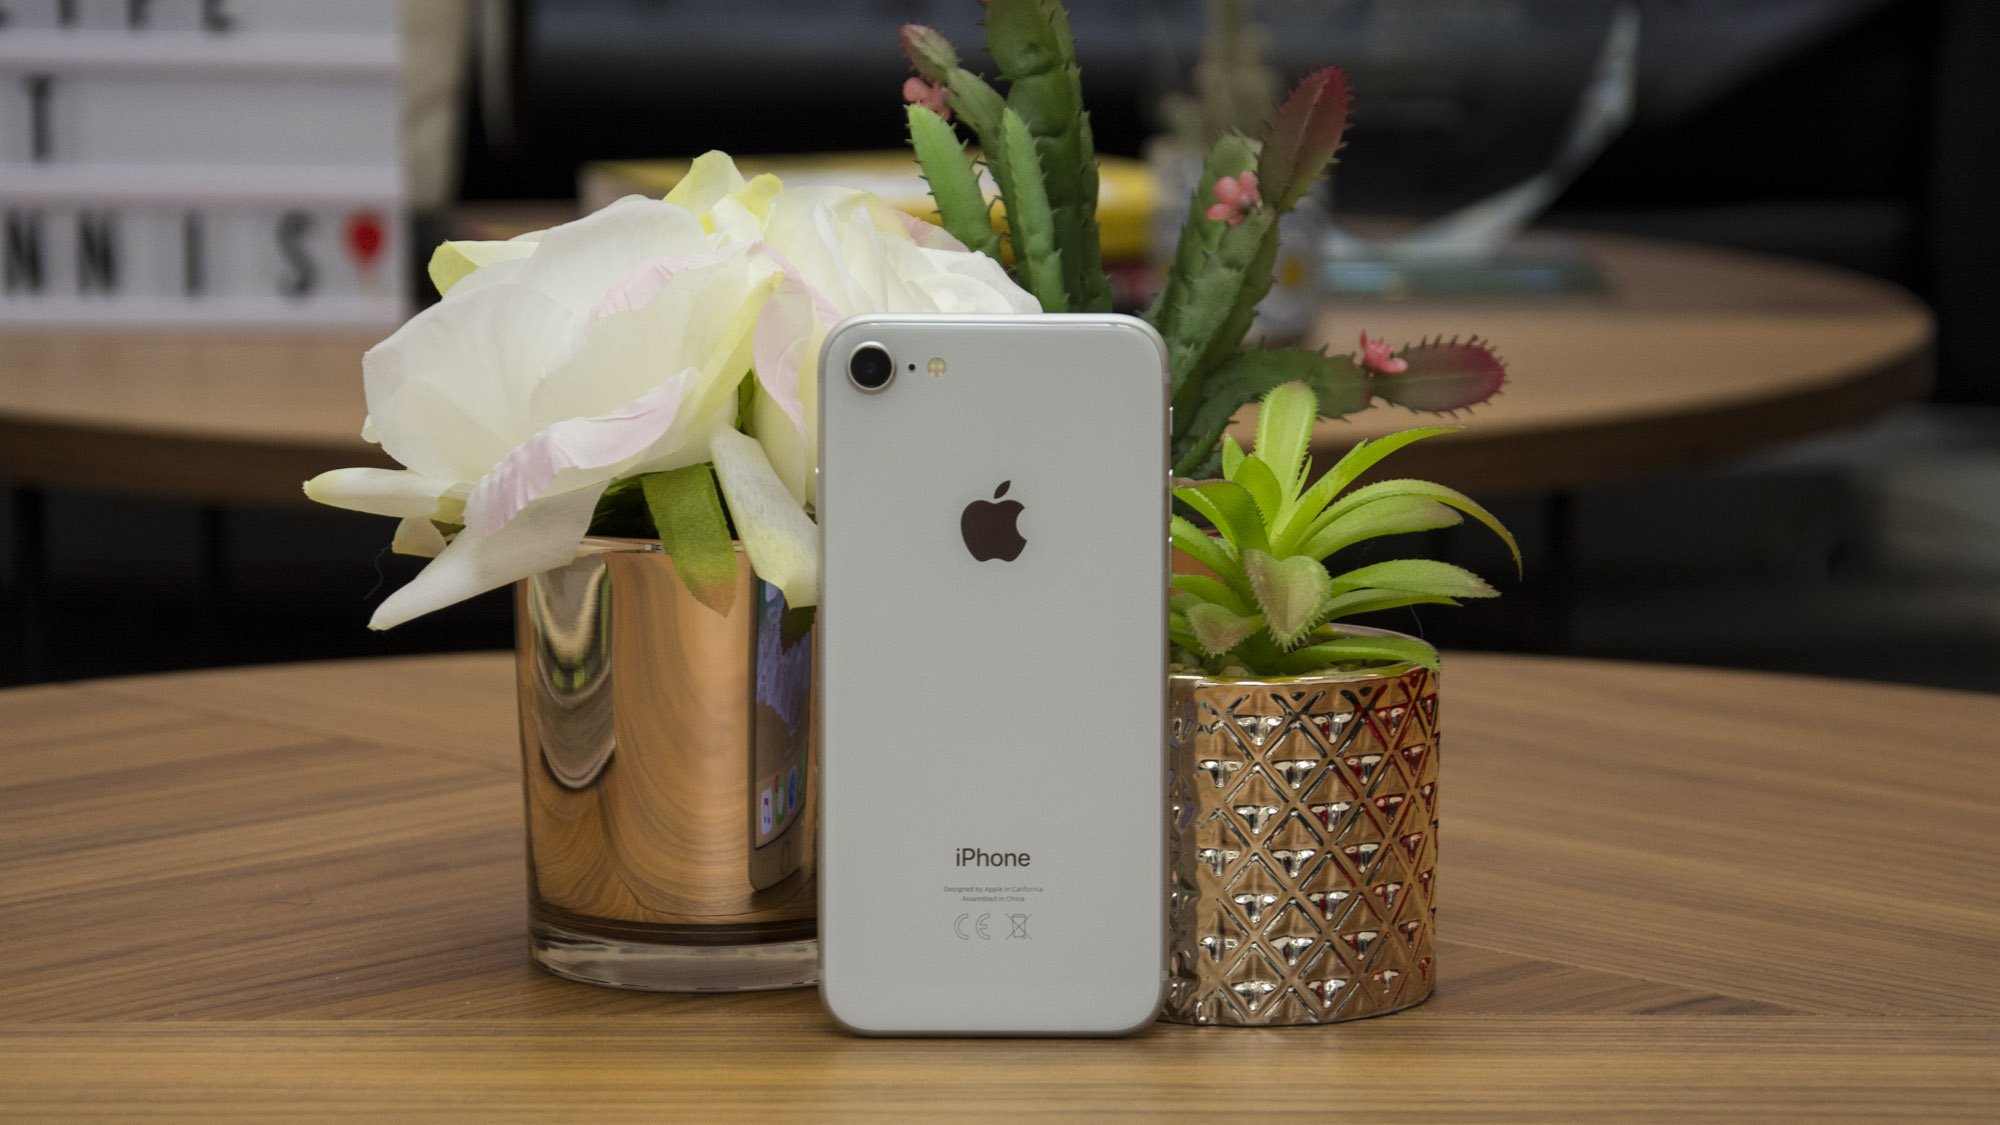 iPhone 8 review: Now a lot cheaper following the new iPhone XR, Xs and Xs Max